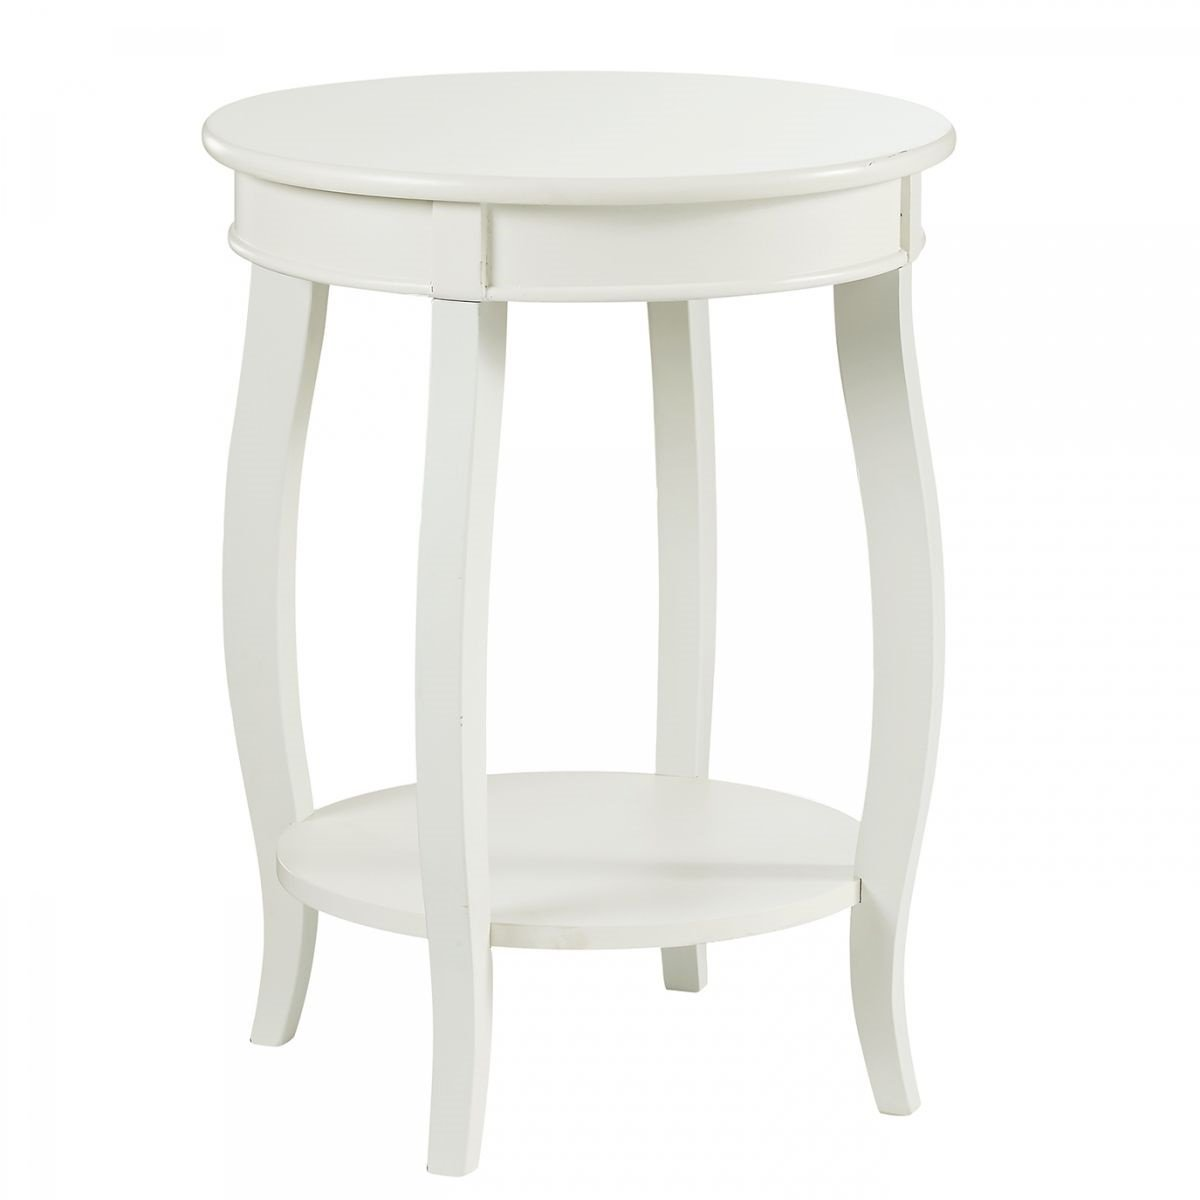 rainbow white round accent table badcock more black ture modern tablecloth end legs high top patio with umbrella nautical pendant lighting fixtures chair covers for outdoor